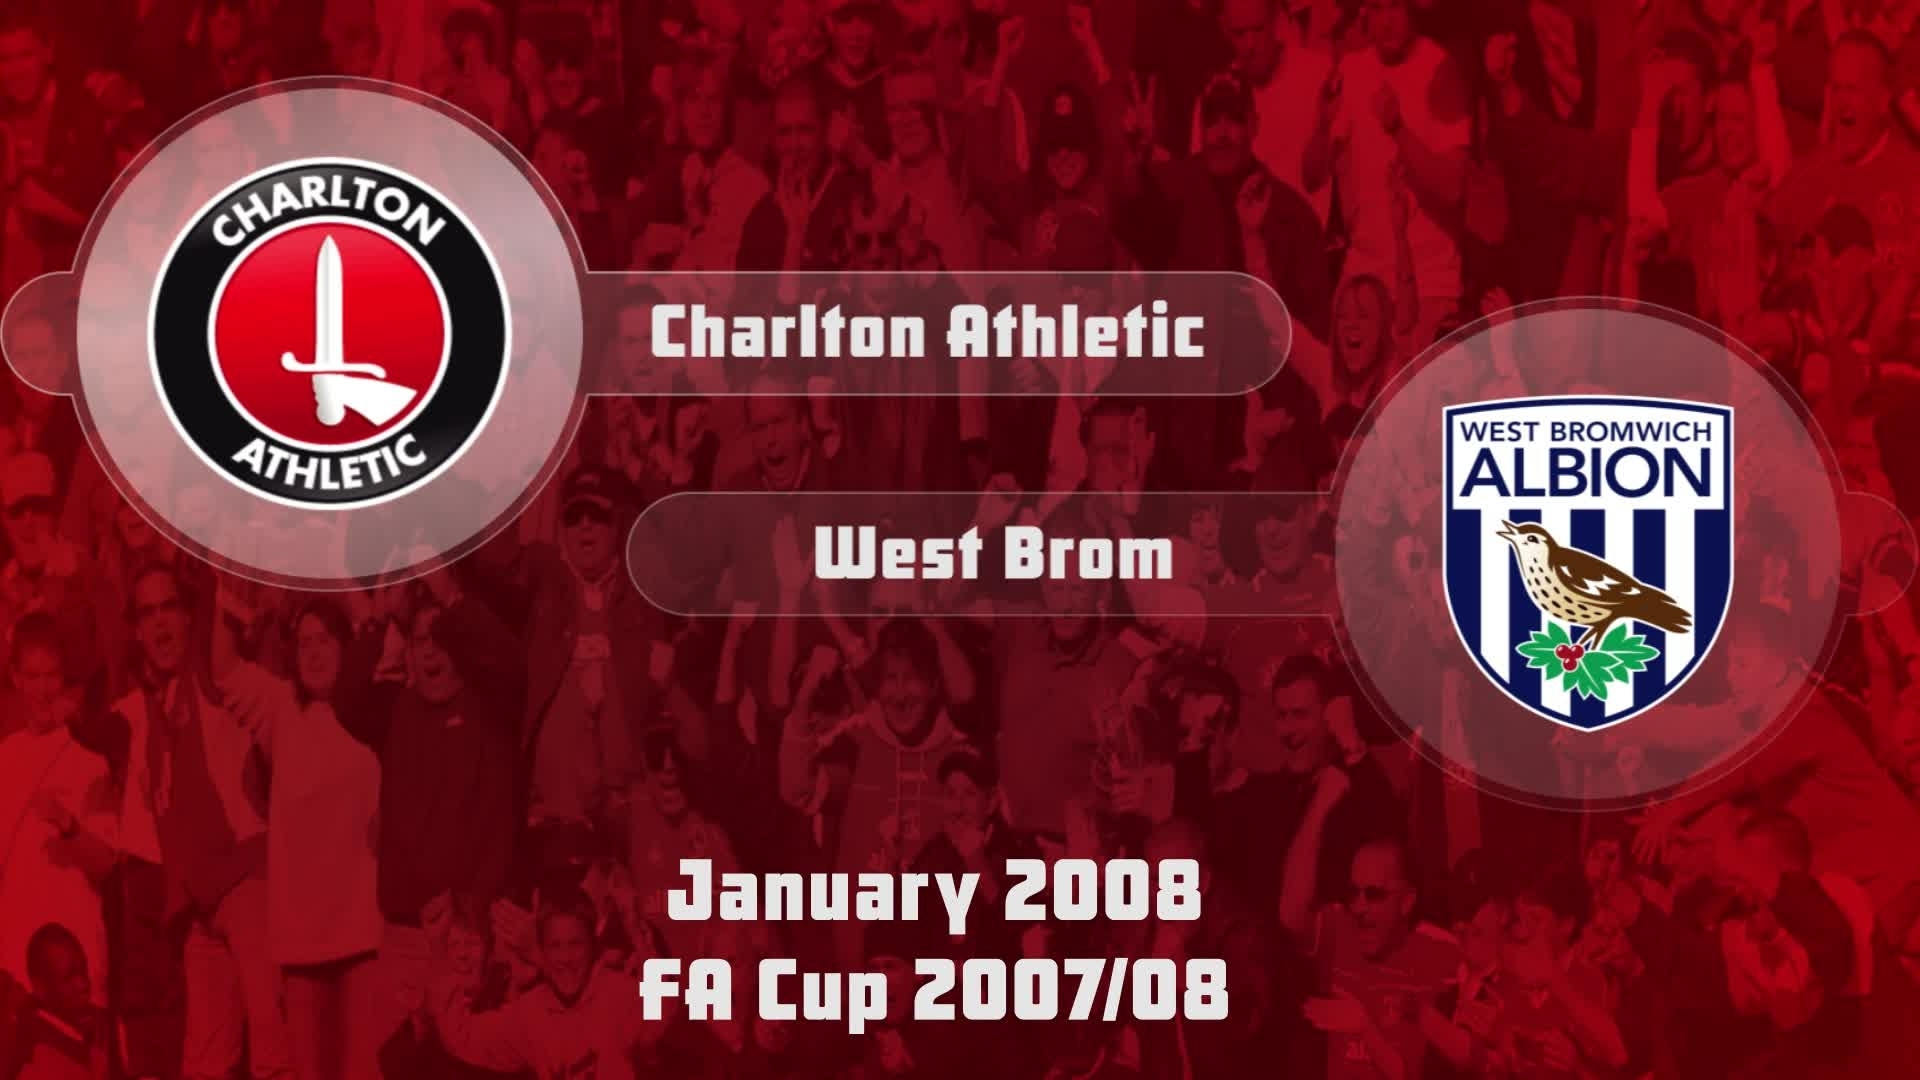 30 HIGHLIGHTS | Charlton 1 West Brom 1 (FA Cup Jan 2008)